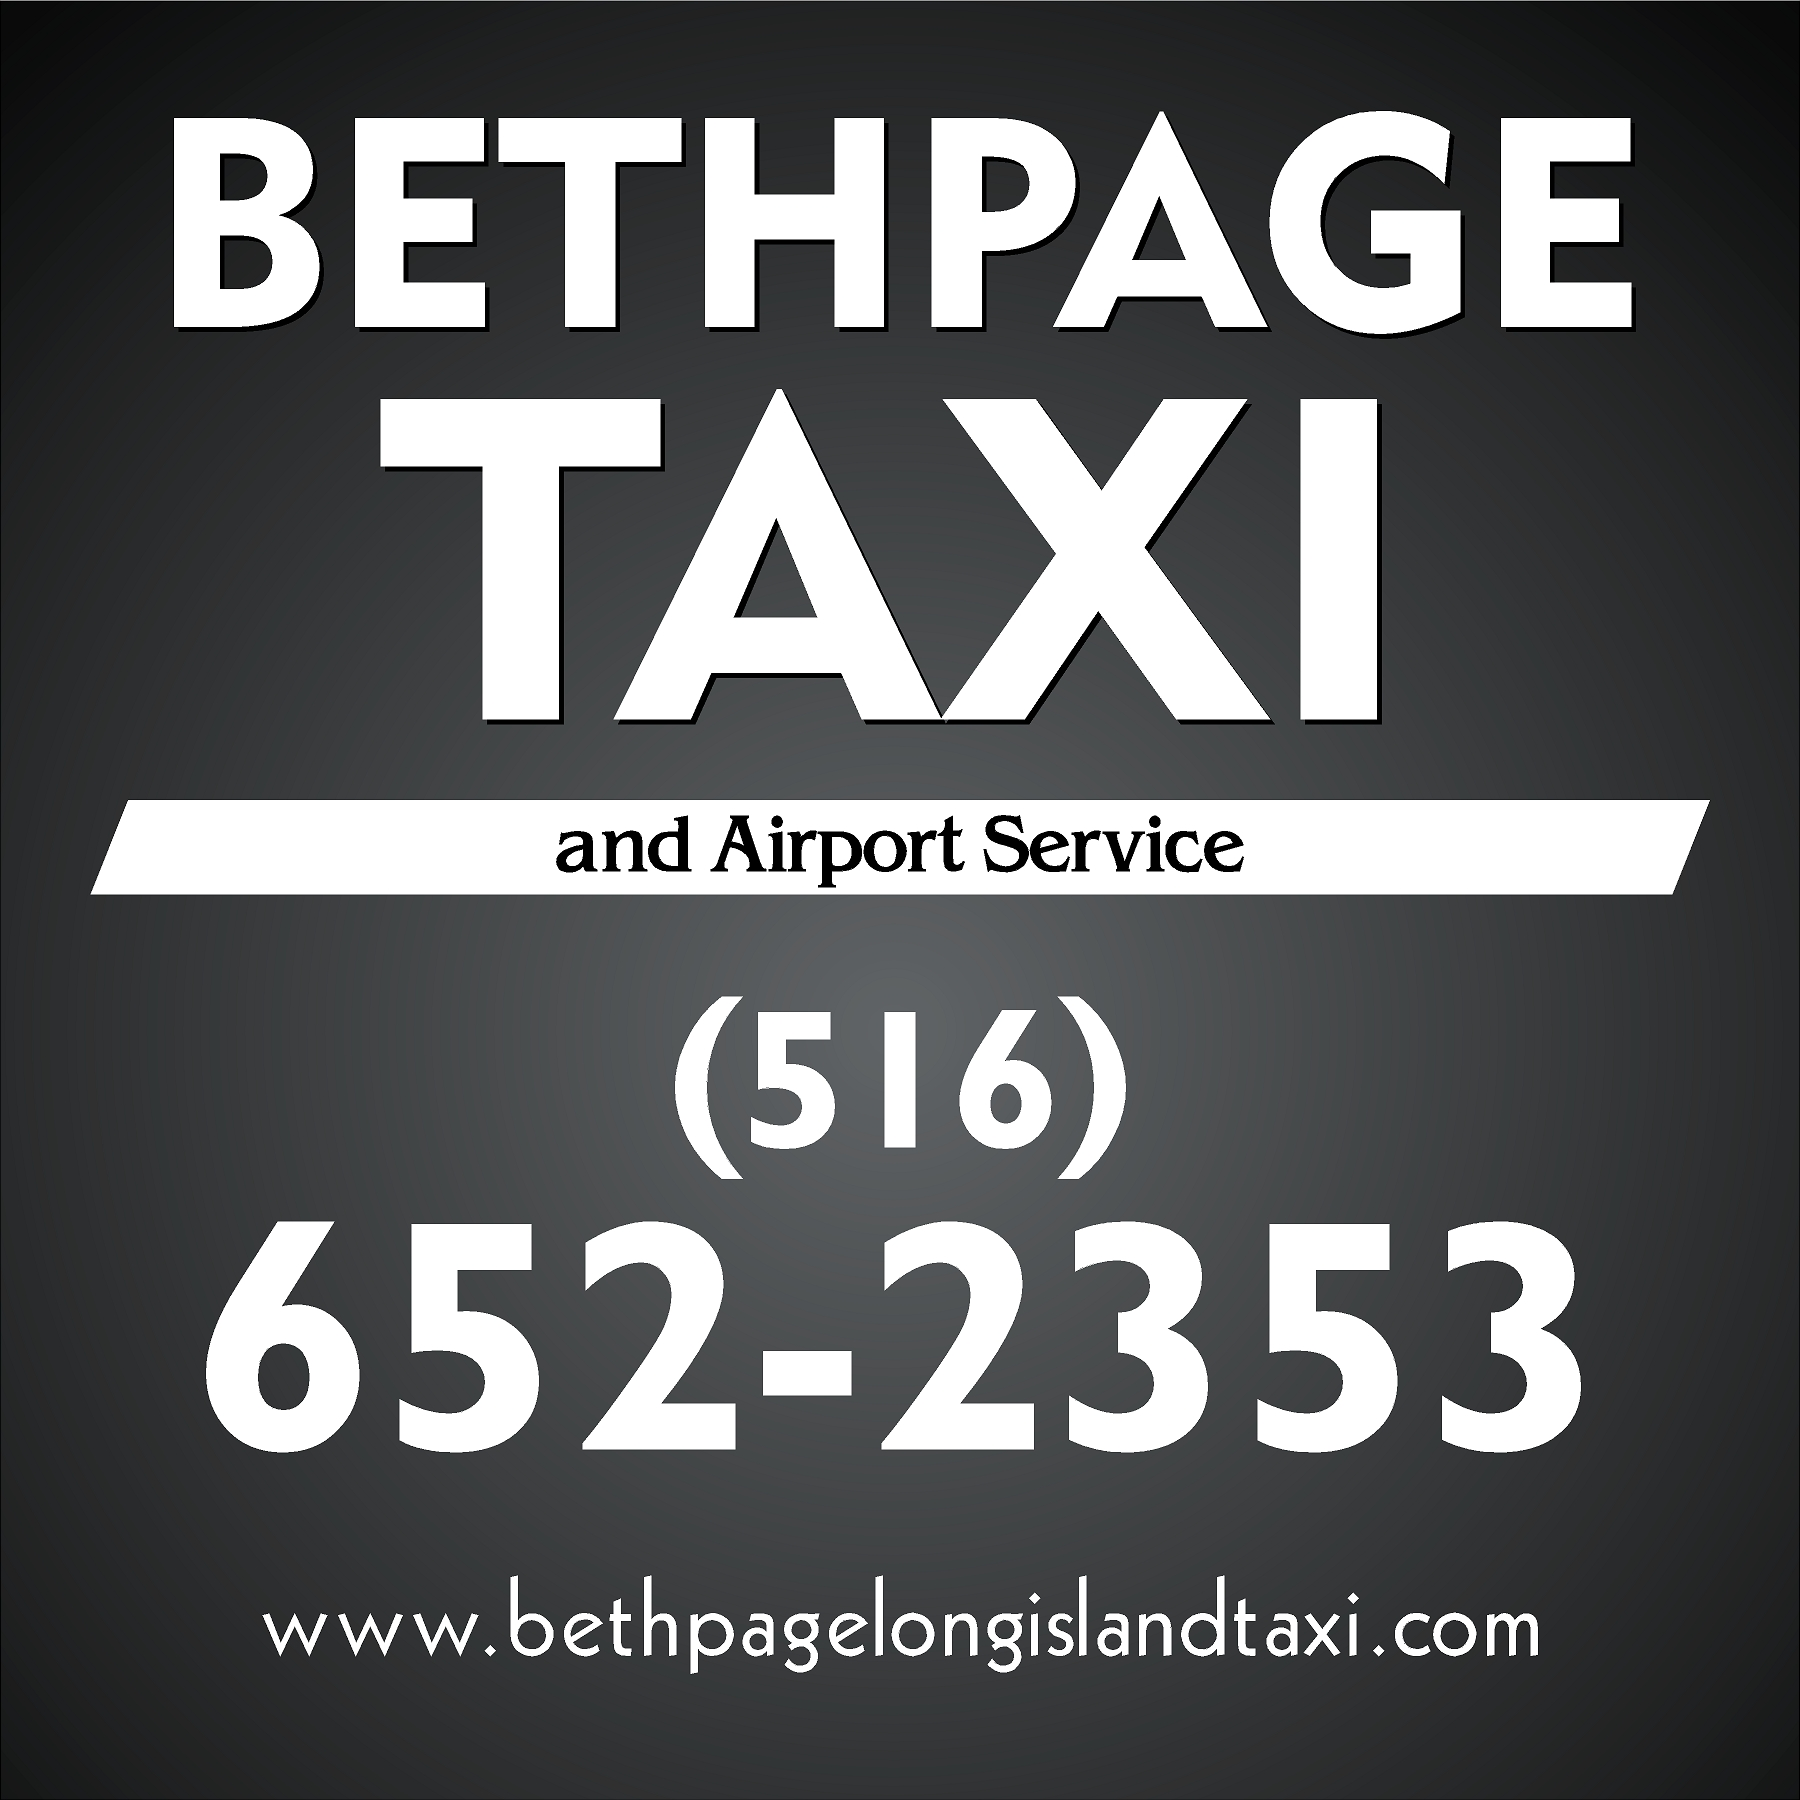 Bethpage Taxi and Airport Service - Bethpage, NY - Taxi Cabs & Limo Rental